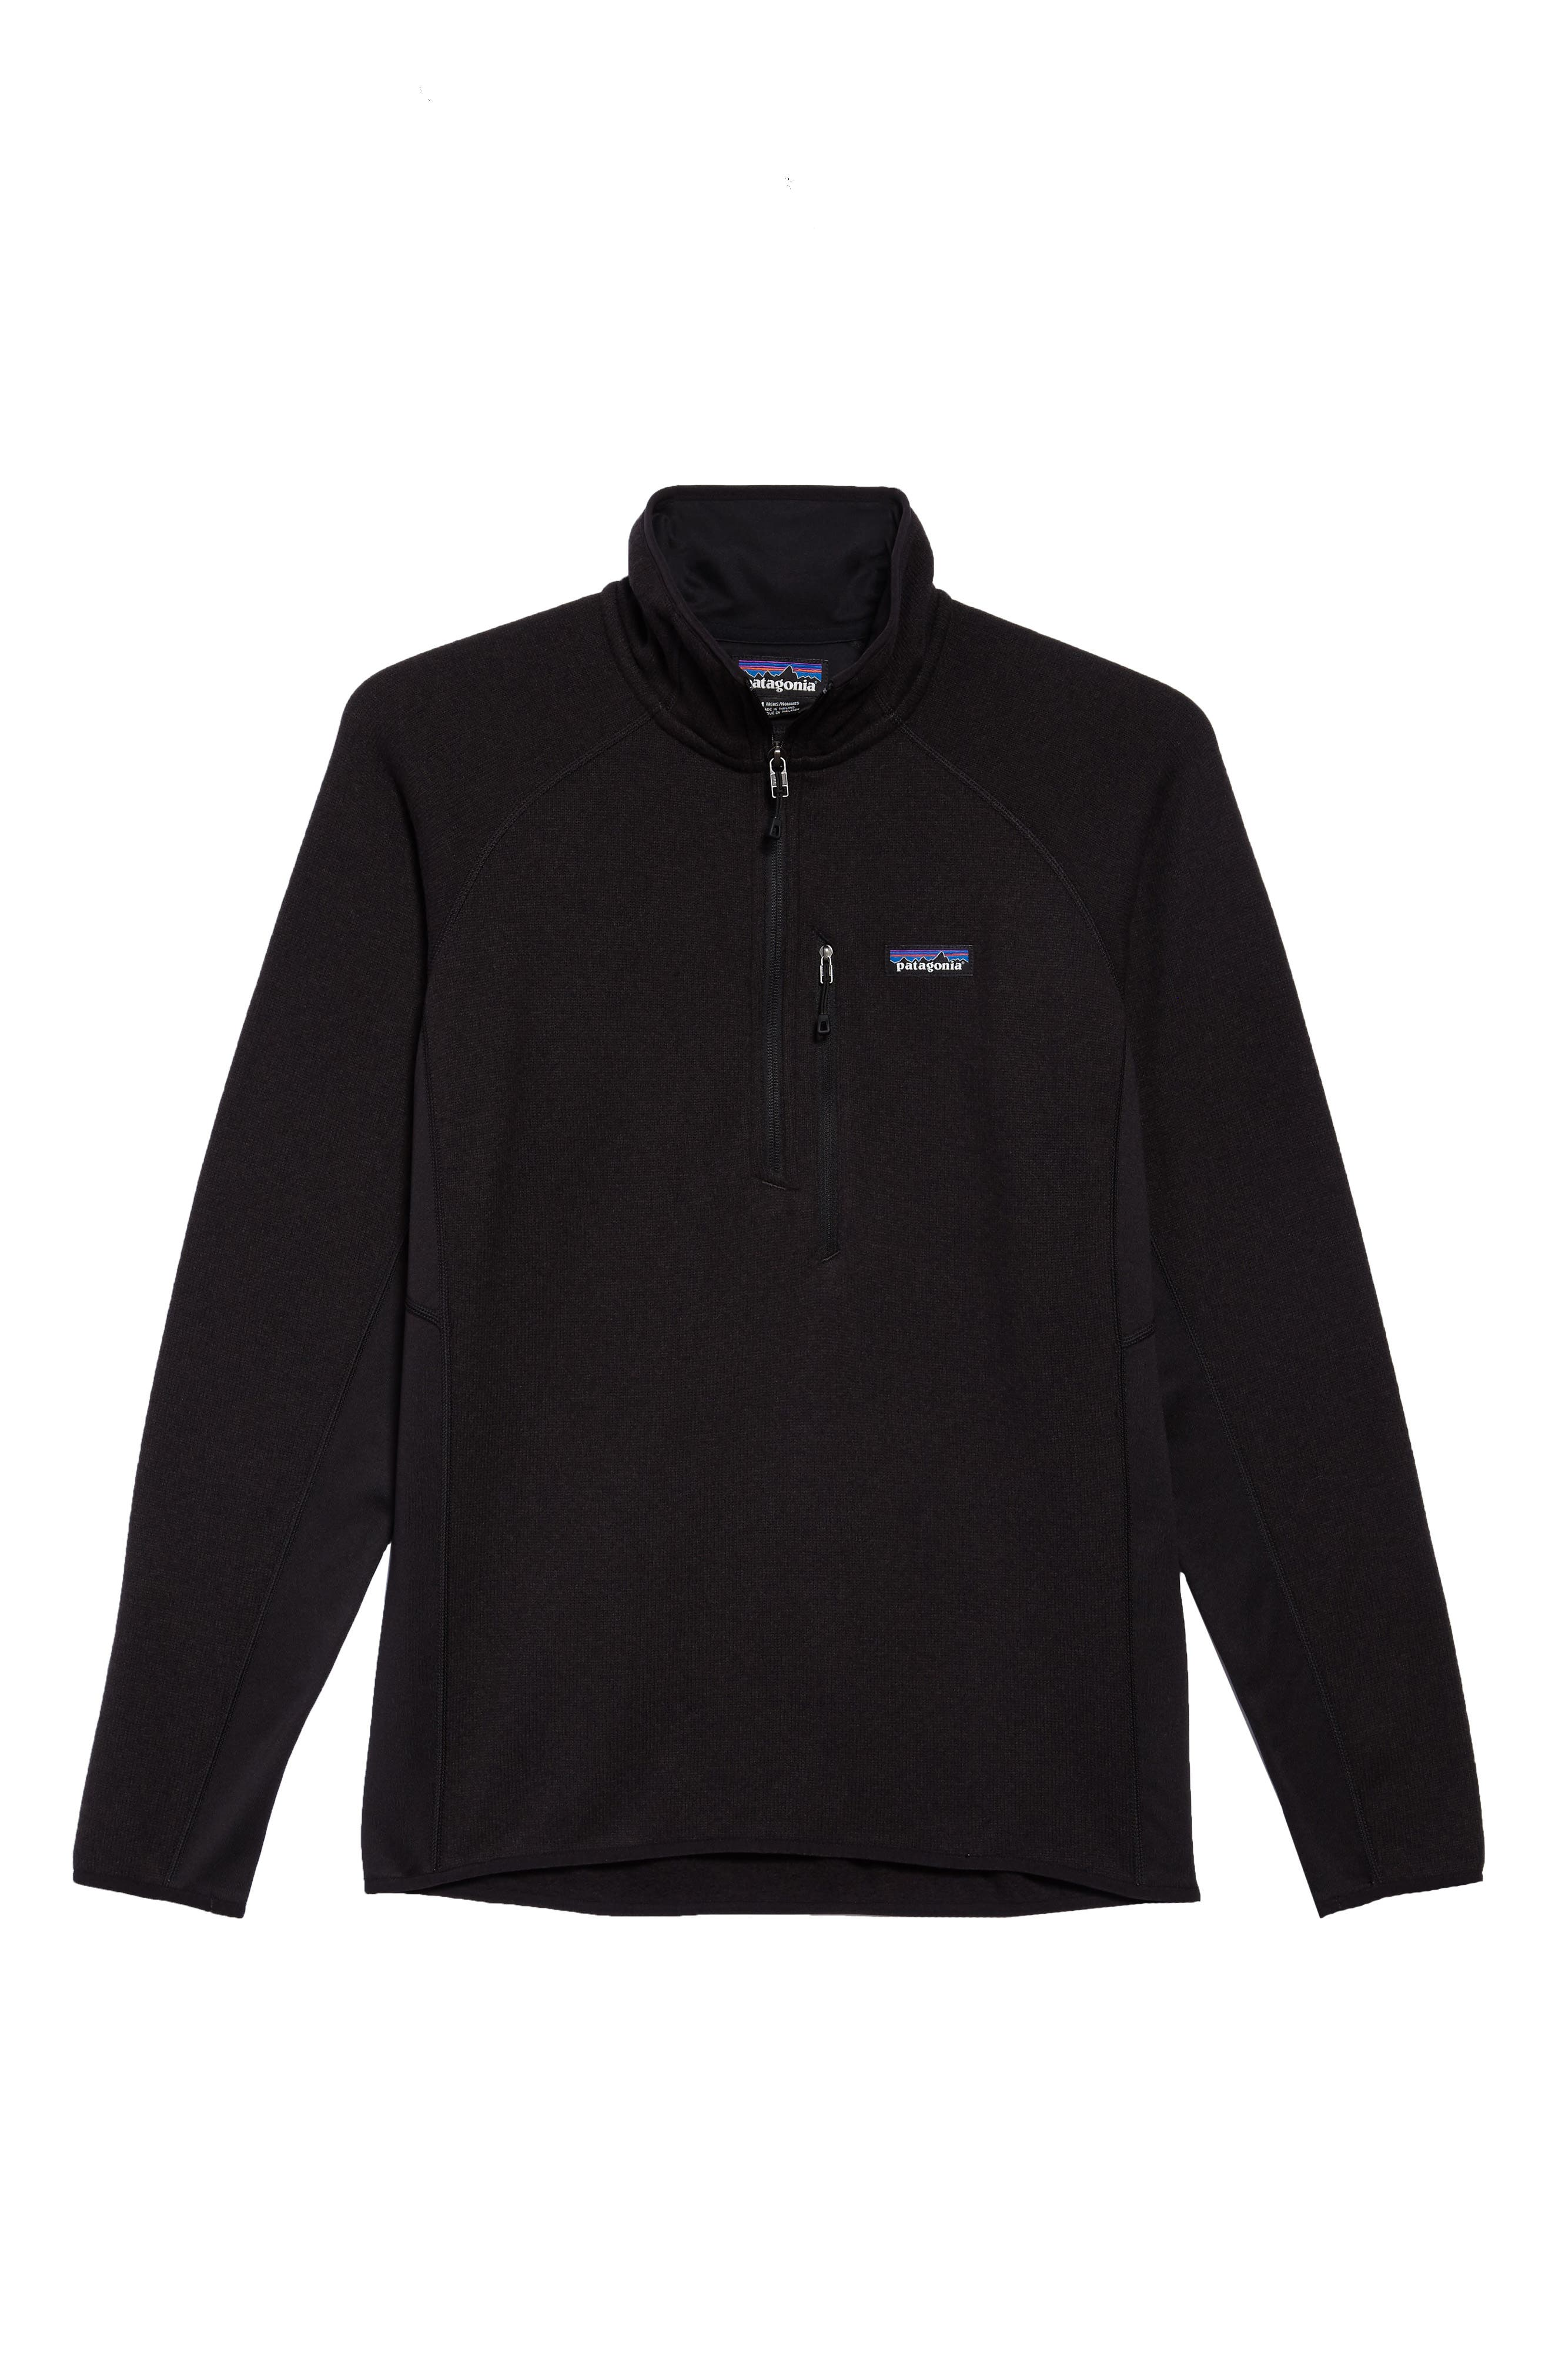 Better Sweater<sup>®</sup> Performance Slim Quarter-Zip Pullover,                             Alternate thumbnail 6, color,                             BLACK